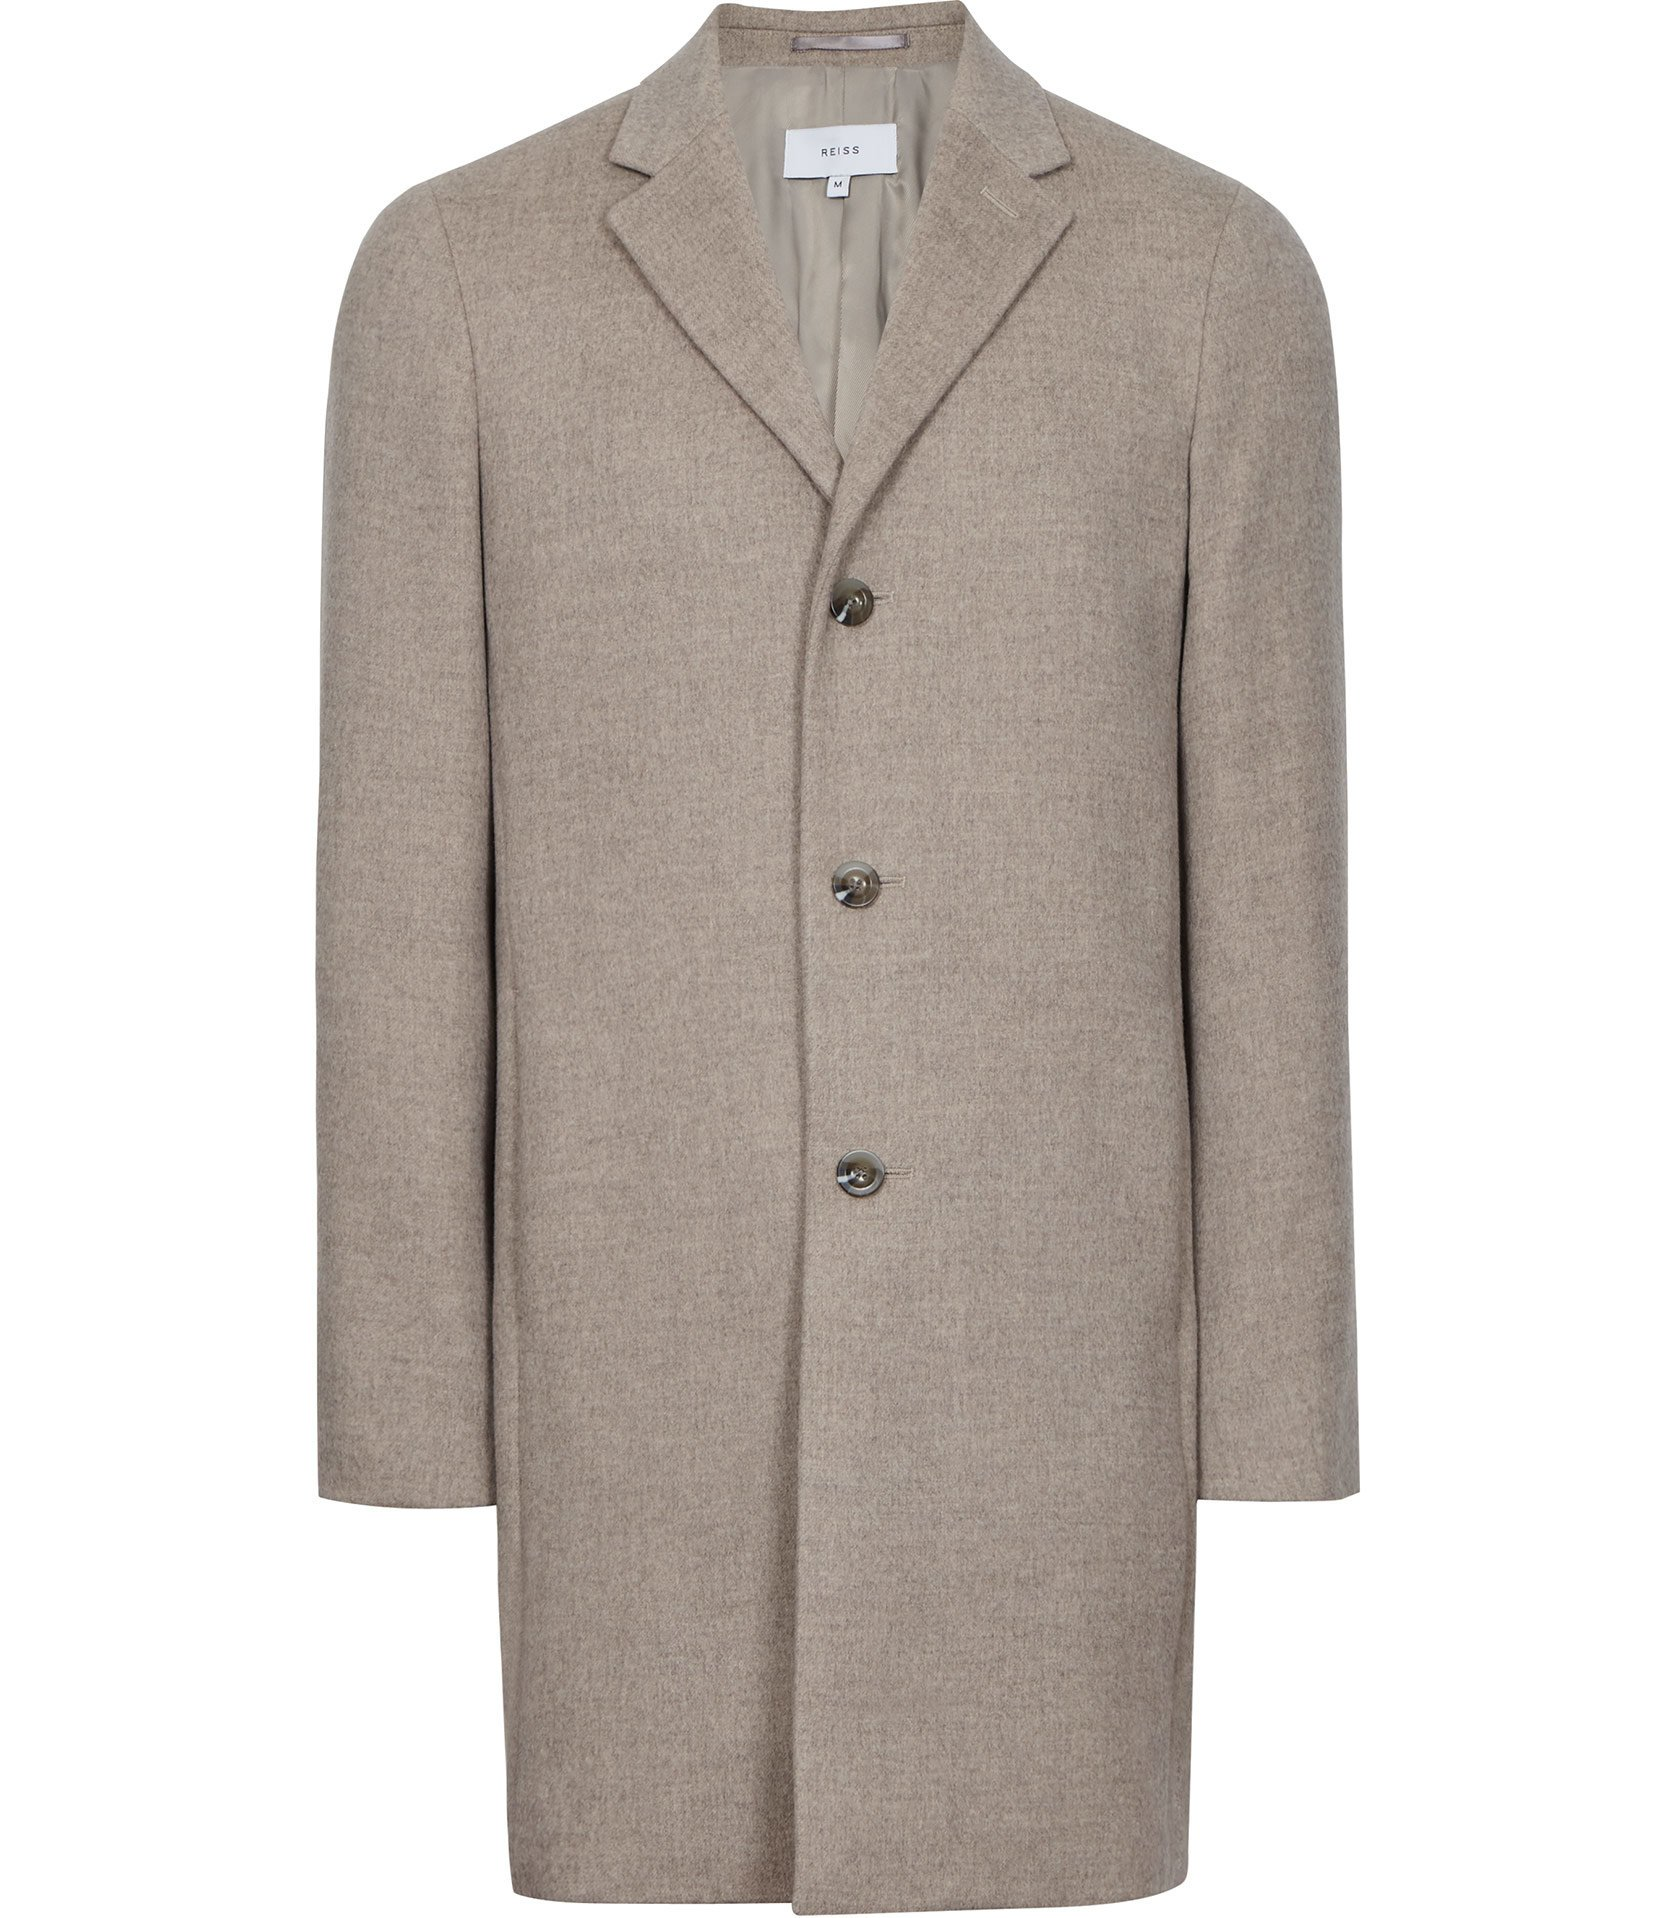 Reiss Oatmeal Overcoat